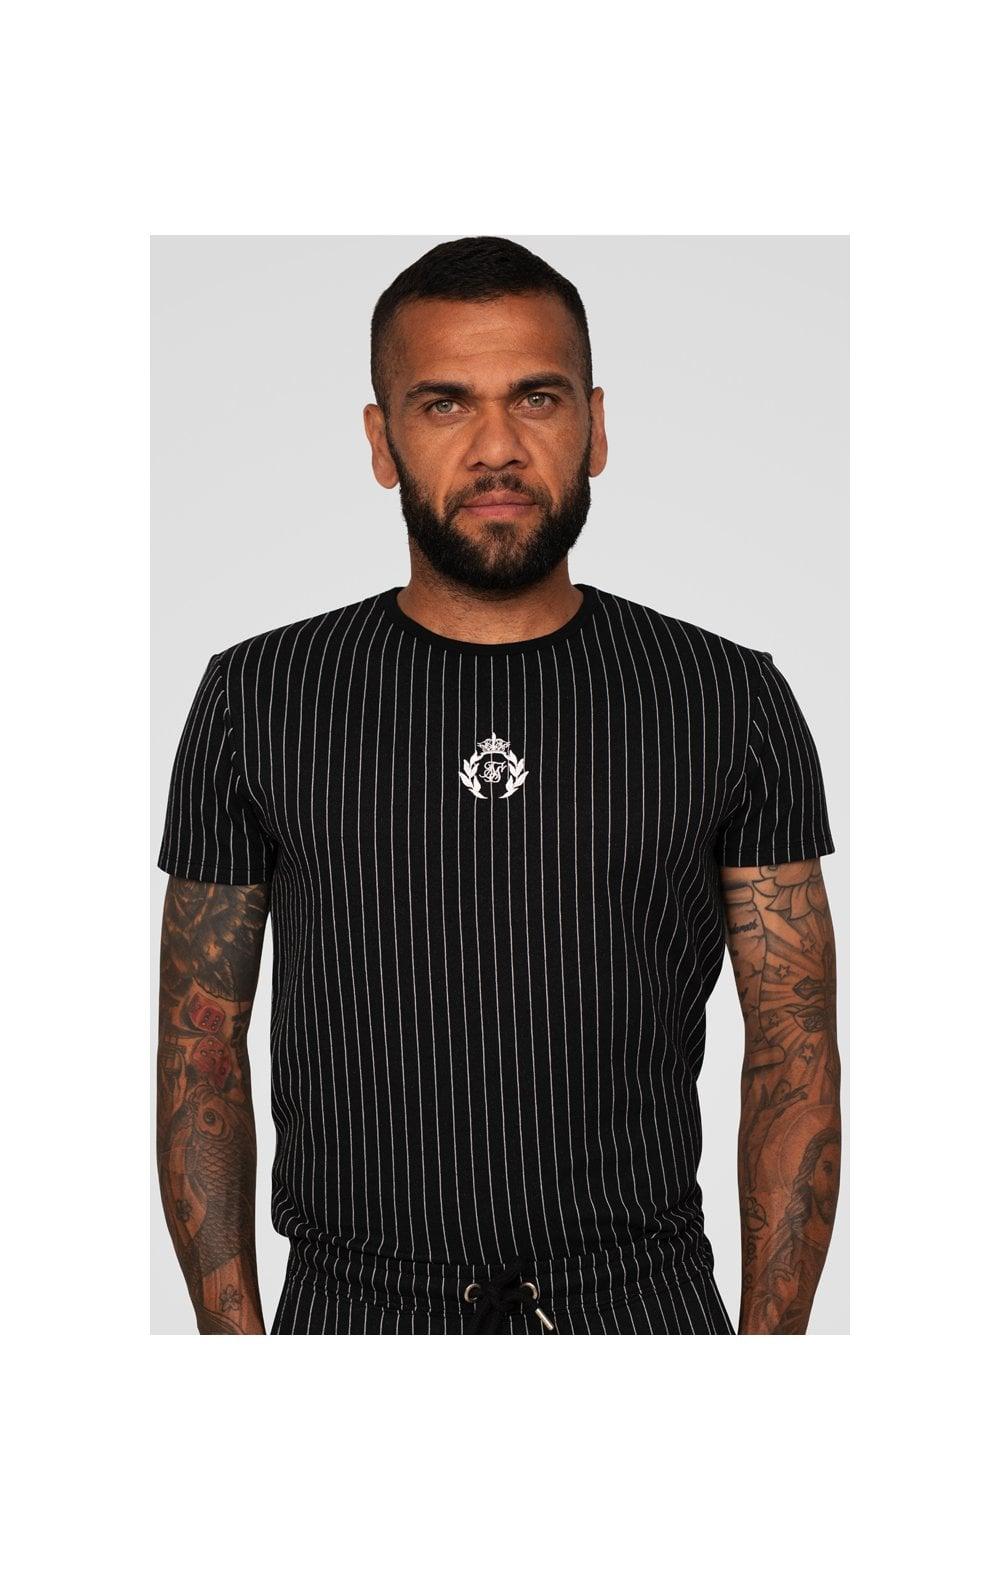 SikSilk X Dani Alves Trainings-T-Shirt Abgerundeter Saum - Schwarzweiss